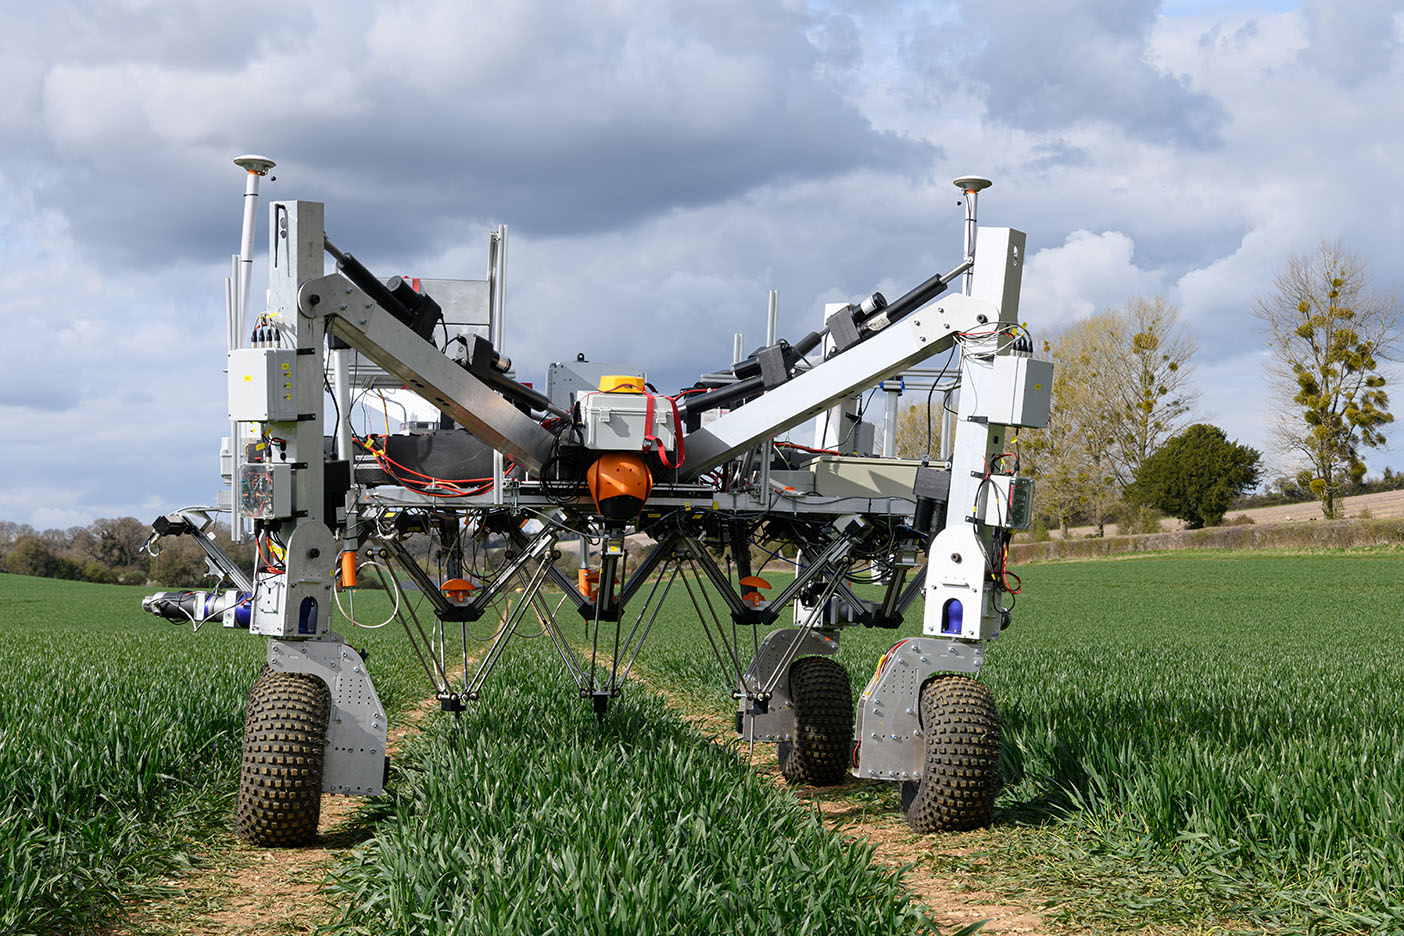 The 'Dick' robot prototype deploys RootWave non-chemical weeding technology mounted on an igus delta robotic arm to zap the weeds.